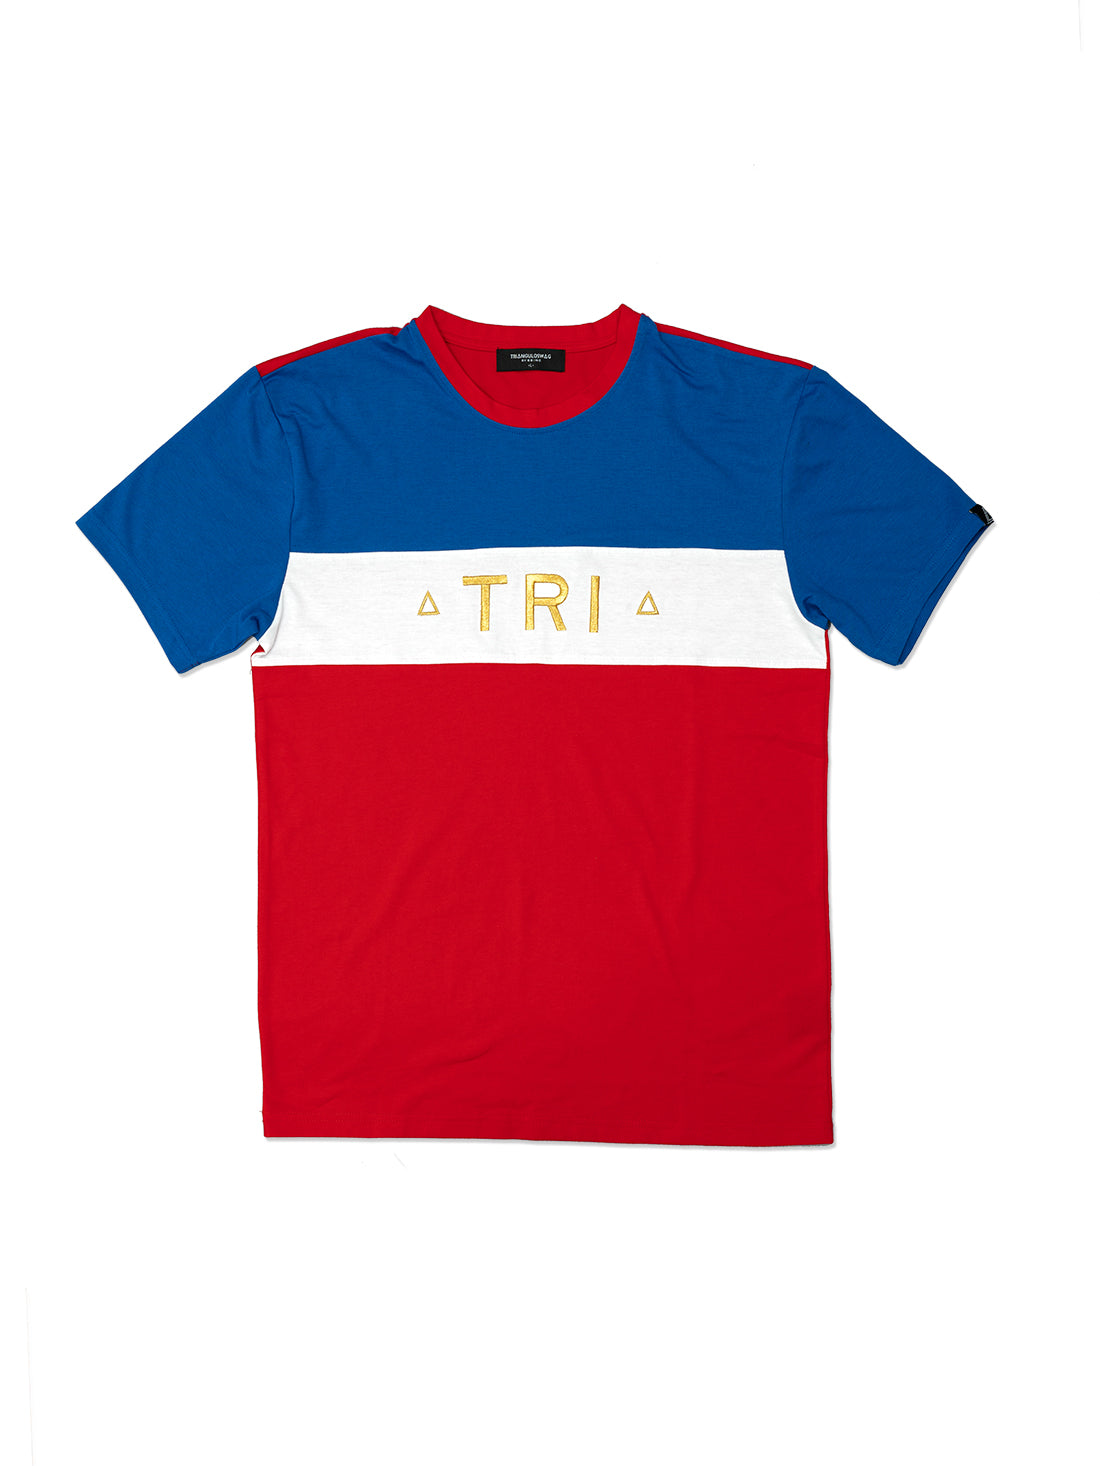 TRI Blue / Red Tshirt